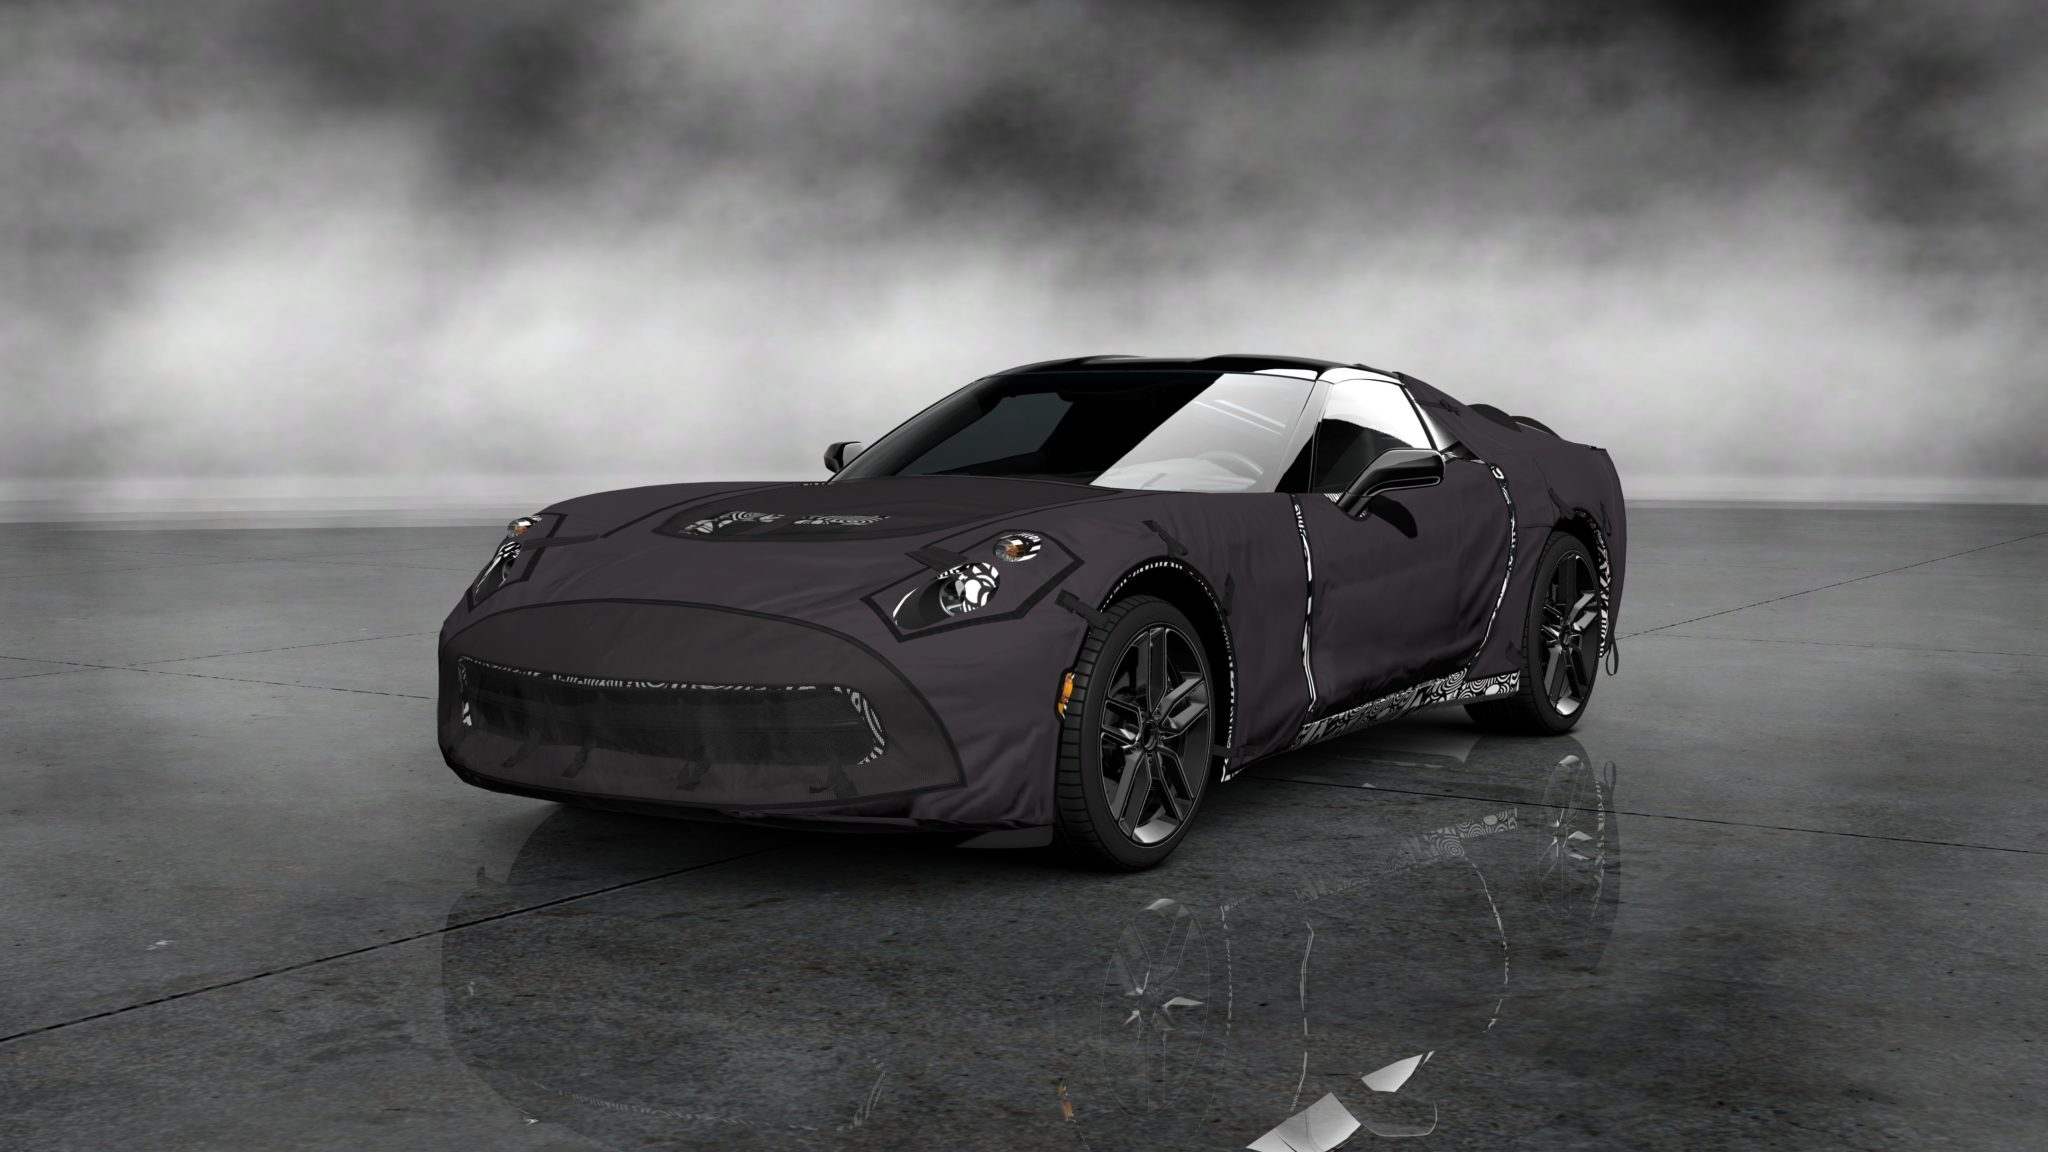 Corvette C7 Prototype In Gran Turismo 5 As Free Dlc Today